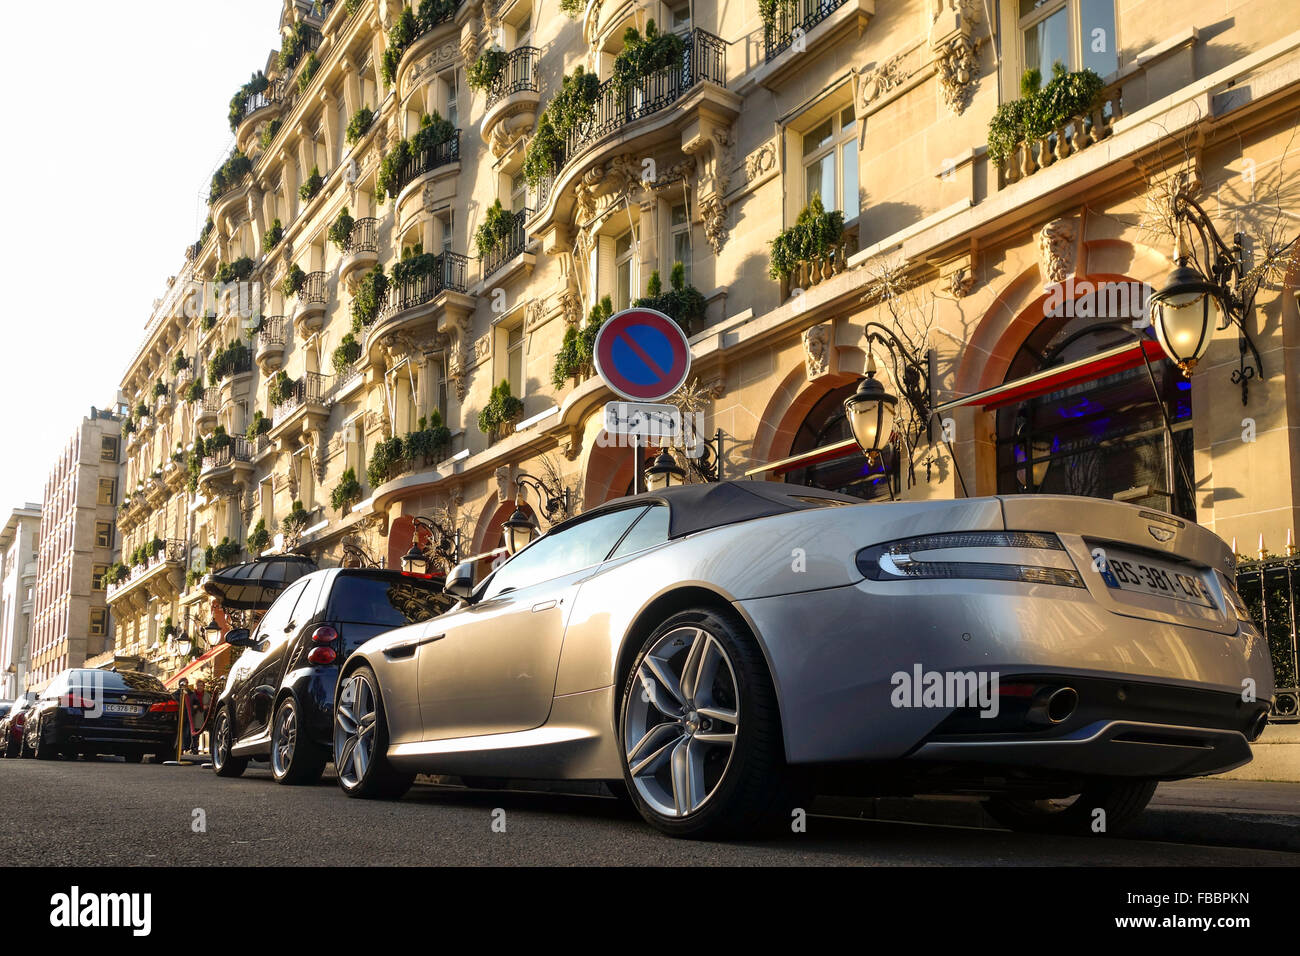 aston martin parked in front of luxury 5 star hotel plaza ath n e stock photo royalty free. Black Bedroom Furniture Sets. Home Design Ideas